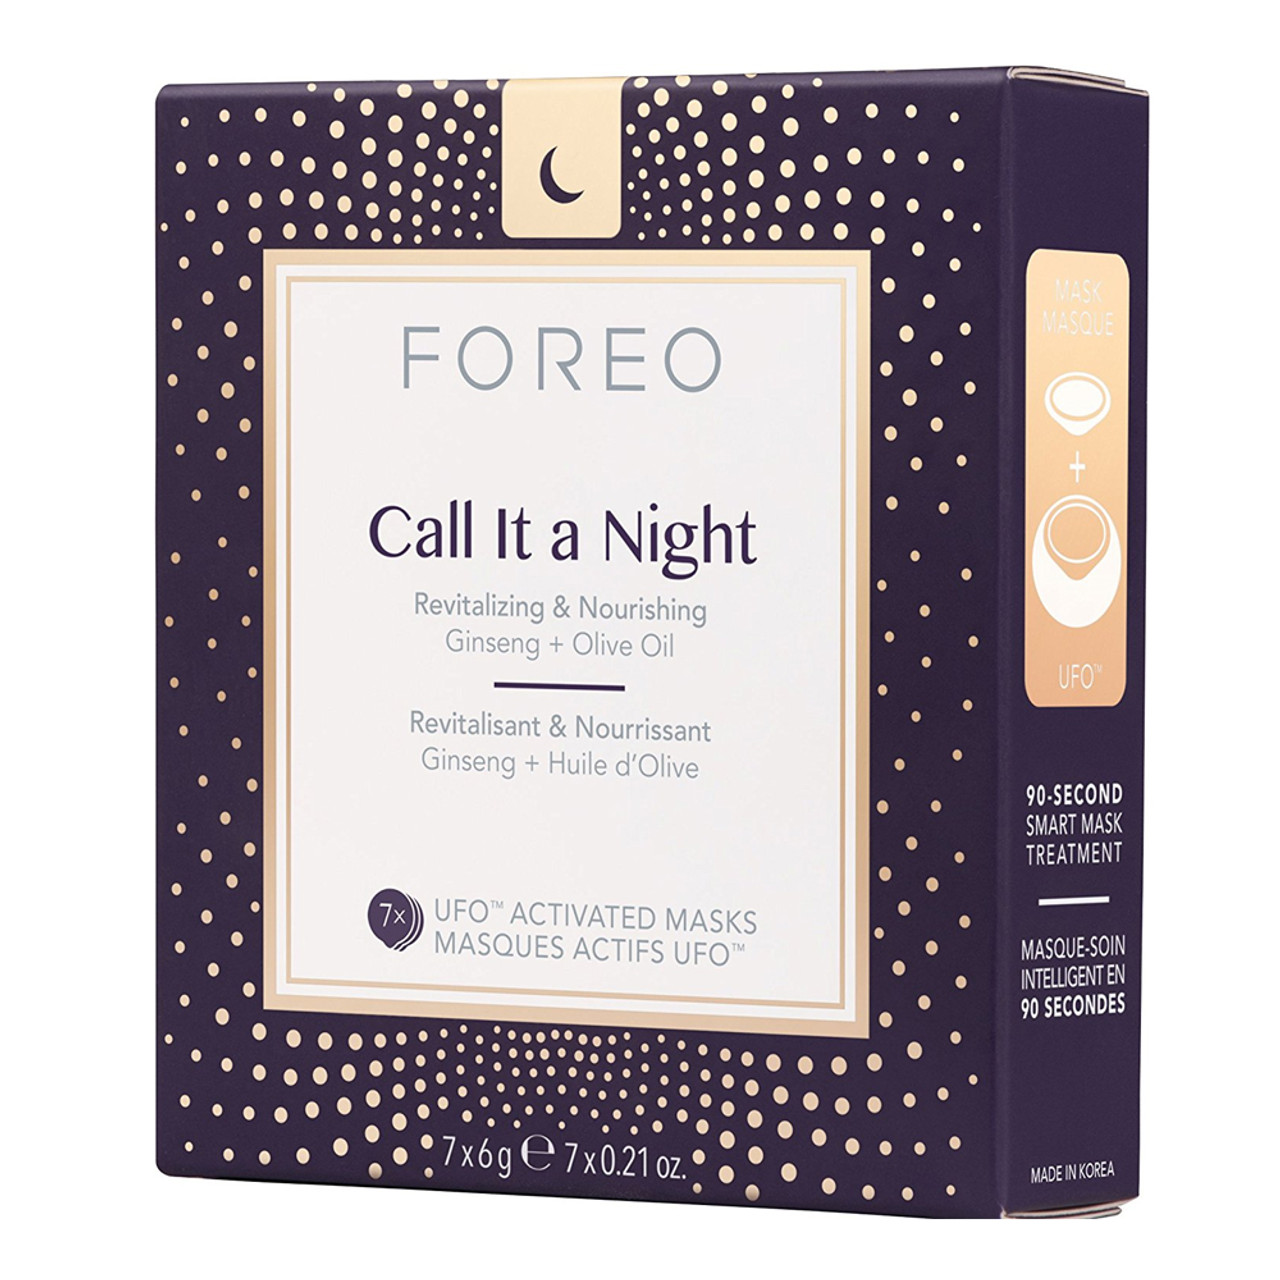 Foreo UFO Activated Masks - Call It A Night (7-Pk)